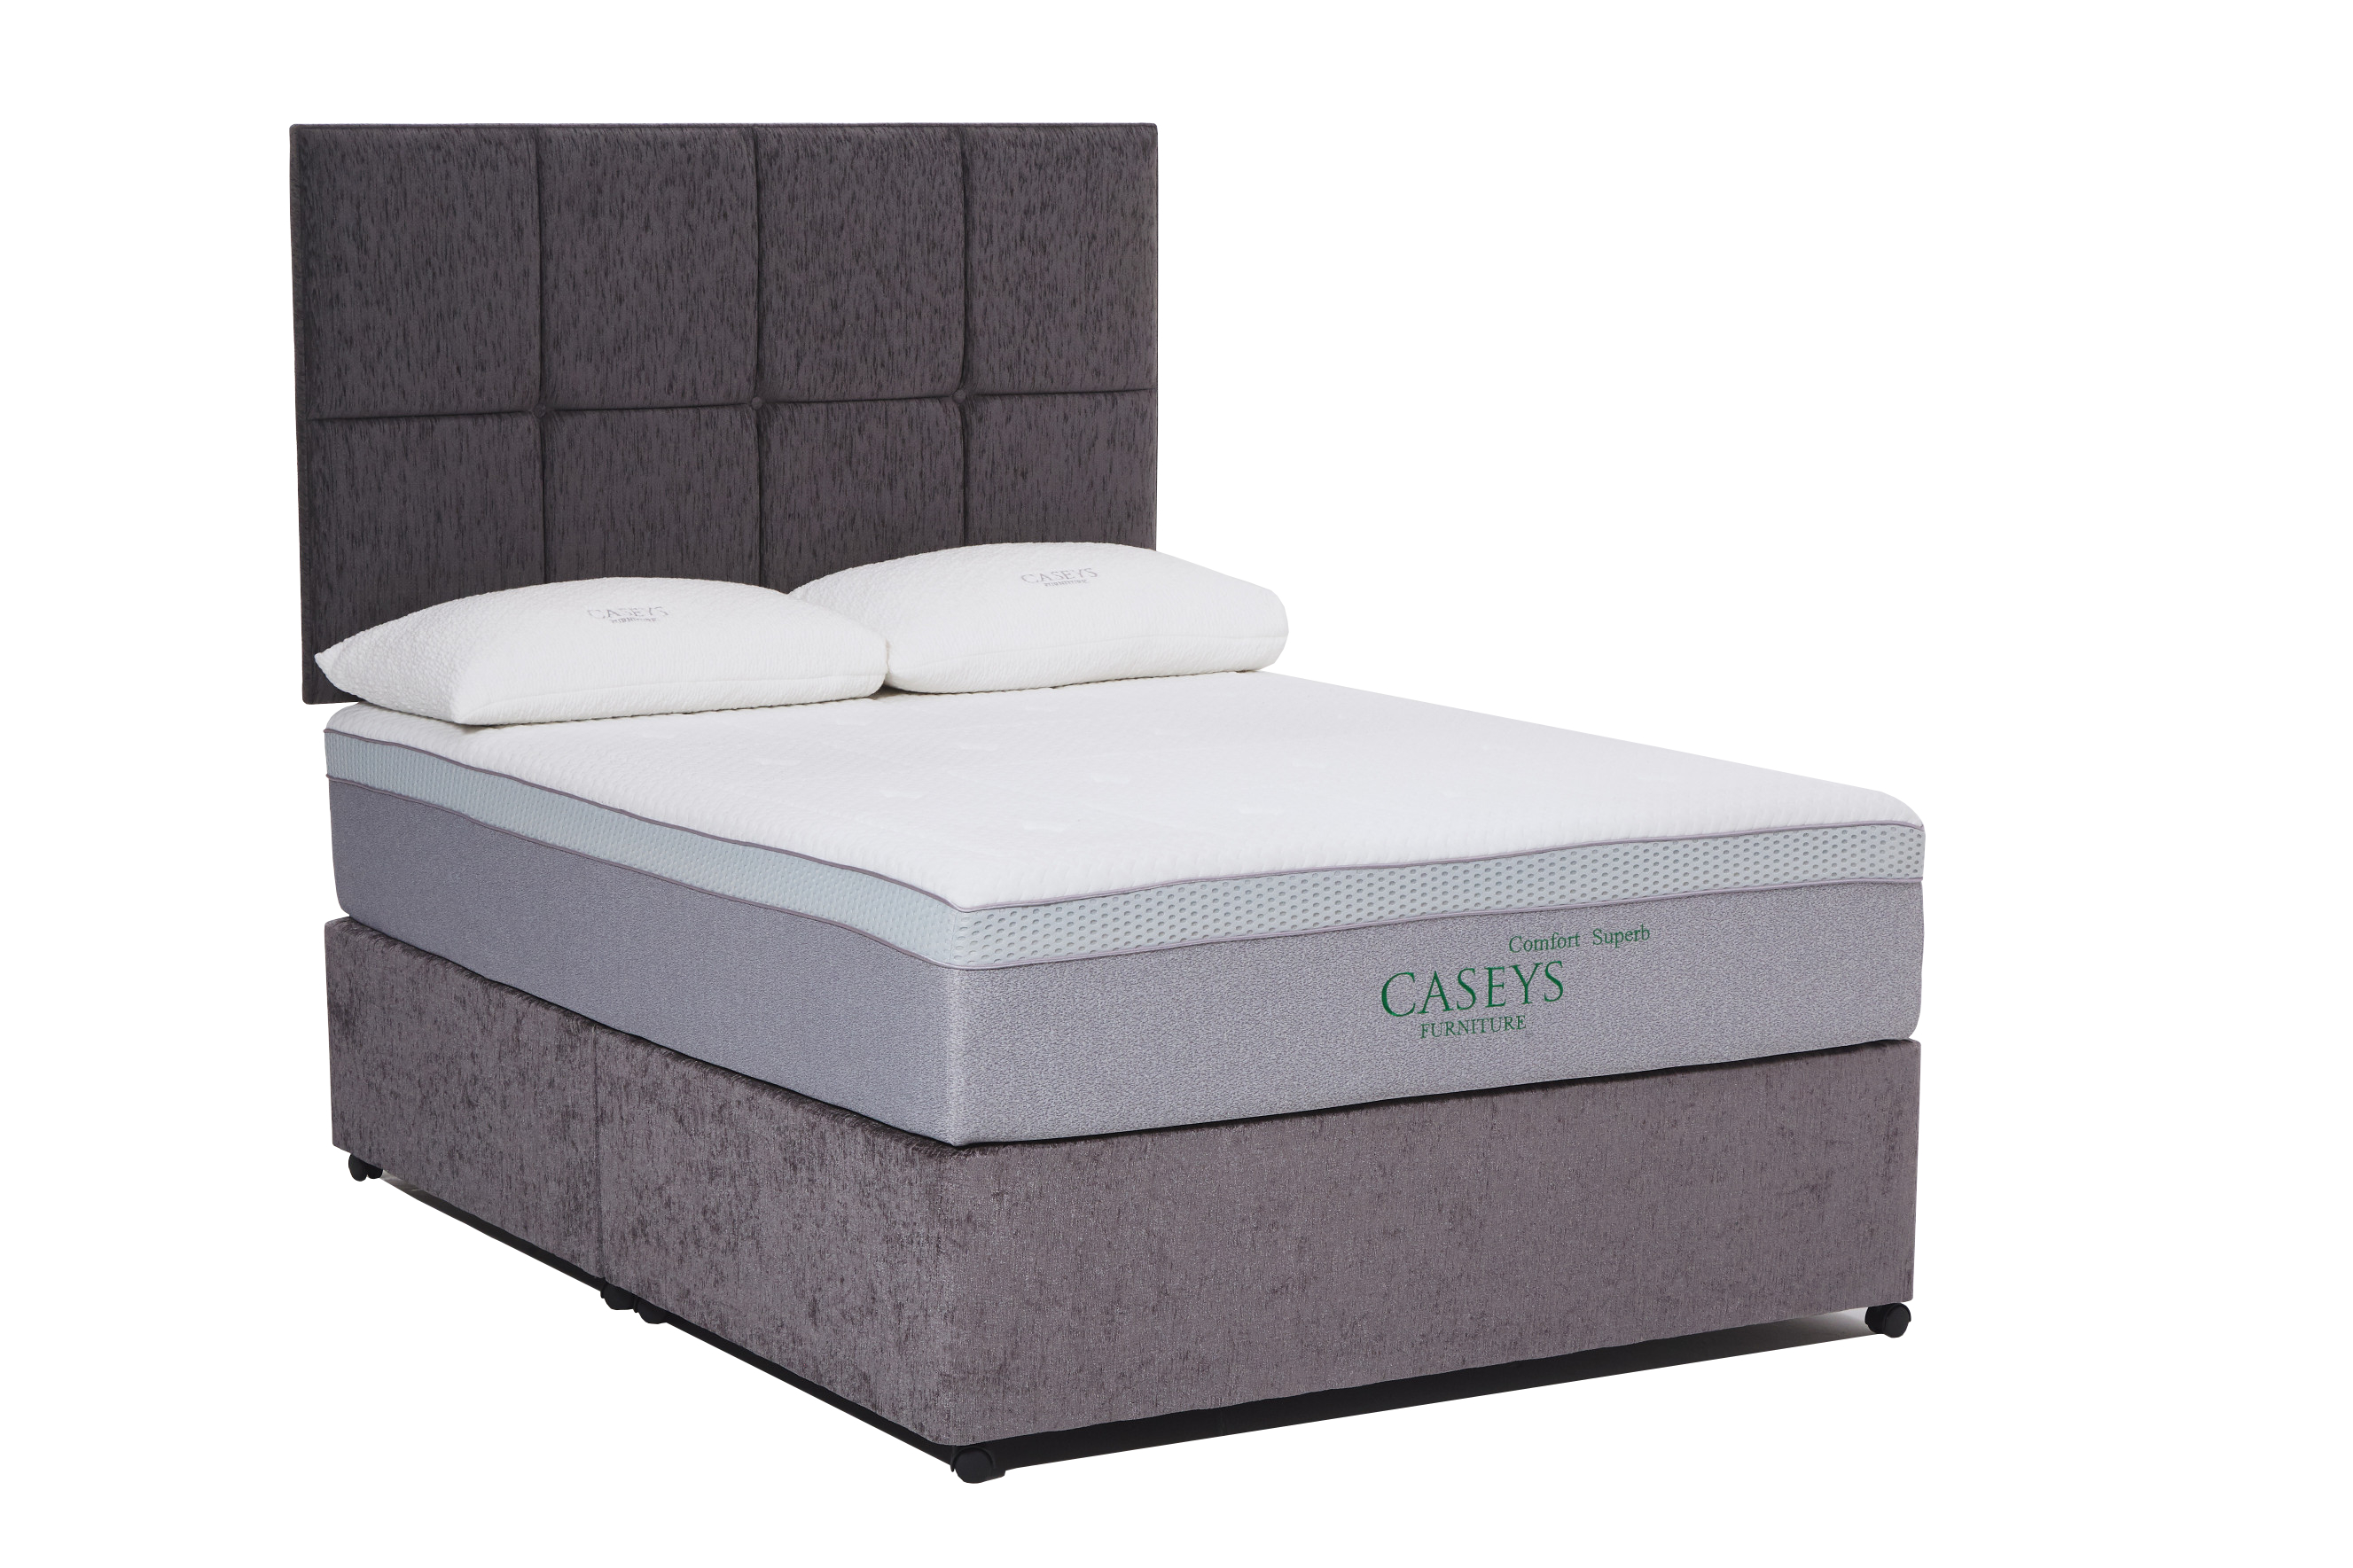 Caseys Comfort Superb Mattress & Divan